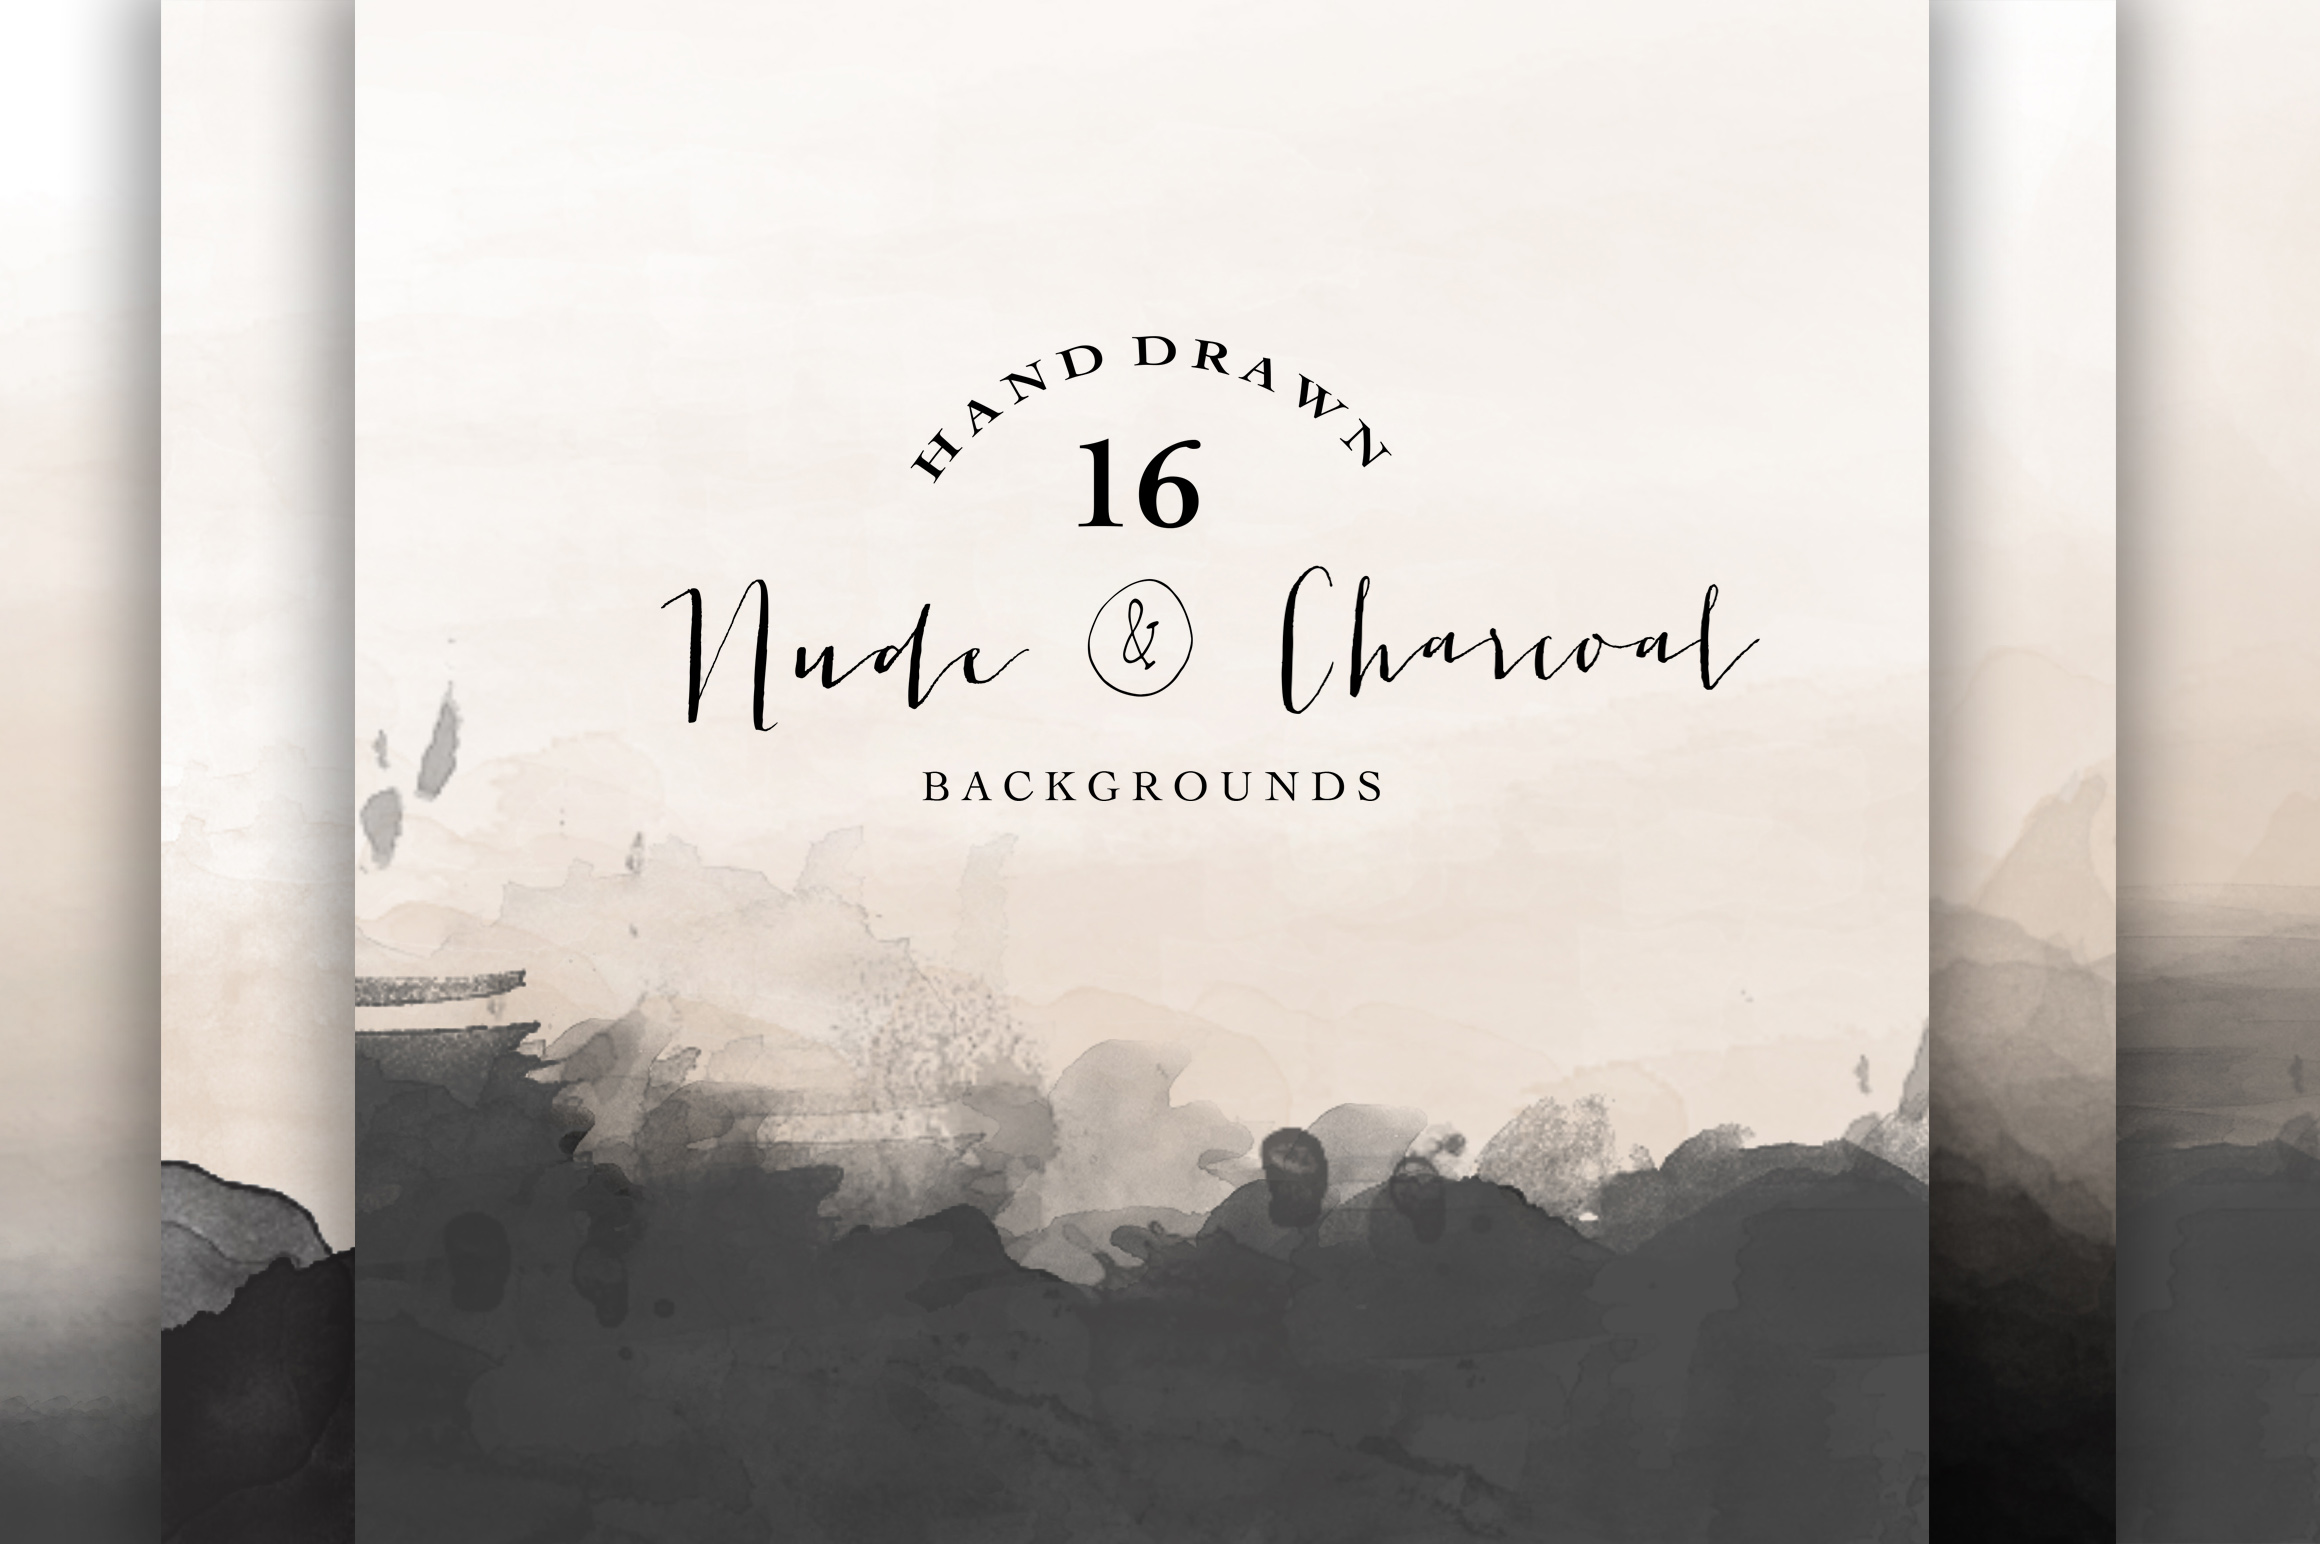 Nude And Charcoal Backgrounds  Textures On Creative Market-8255